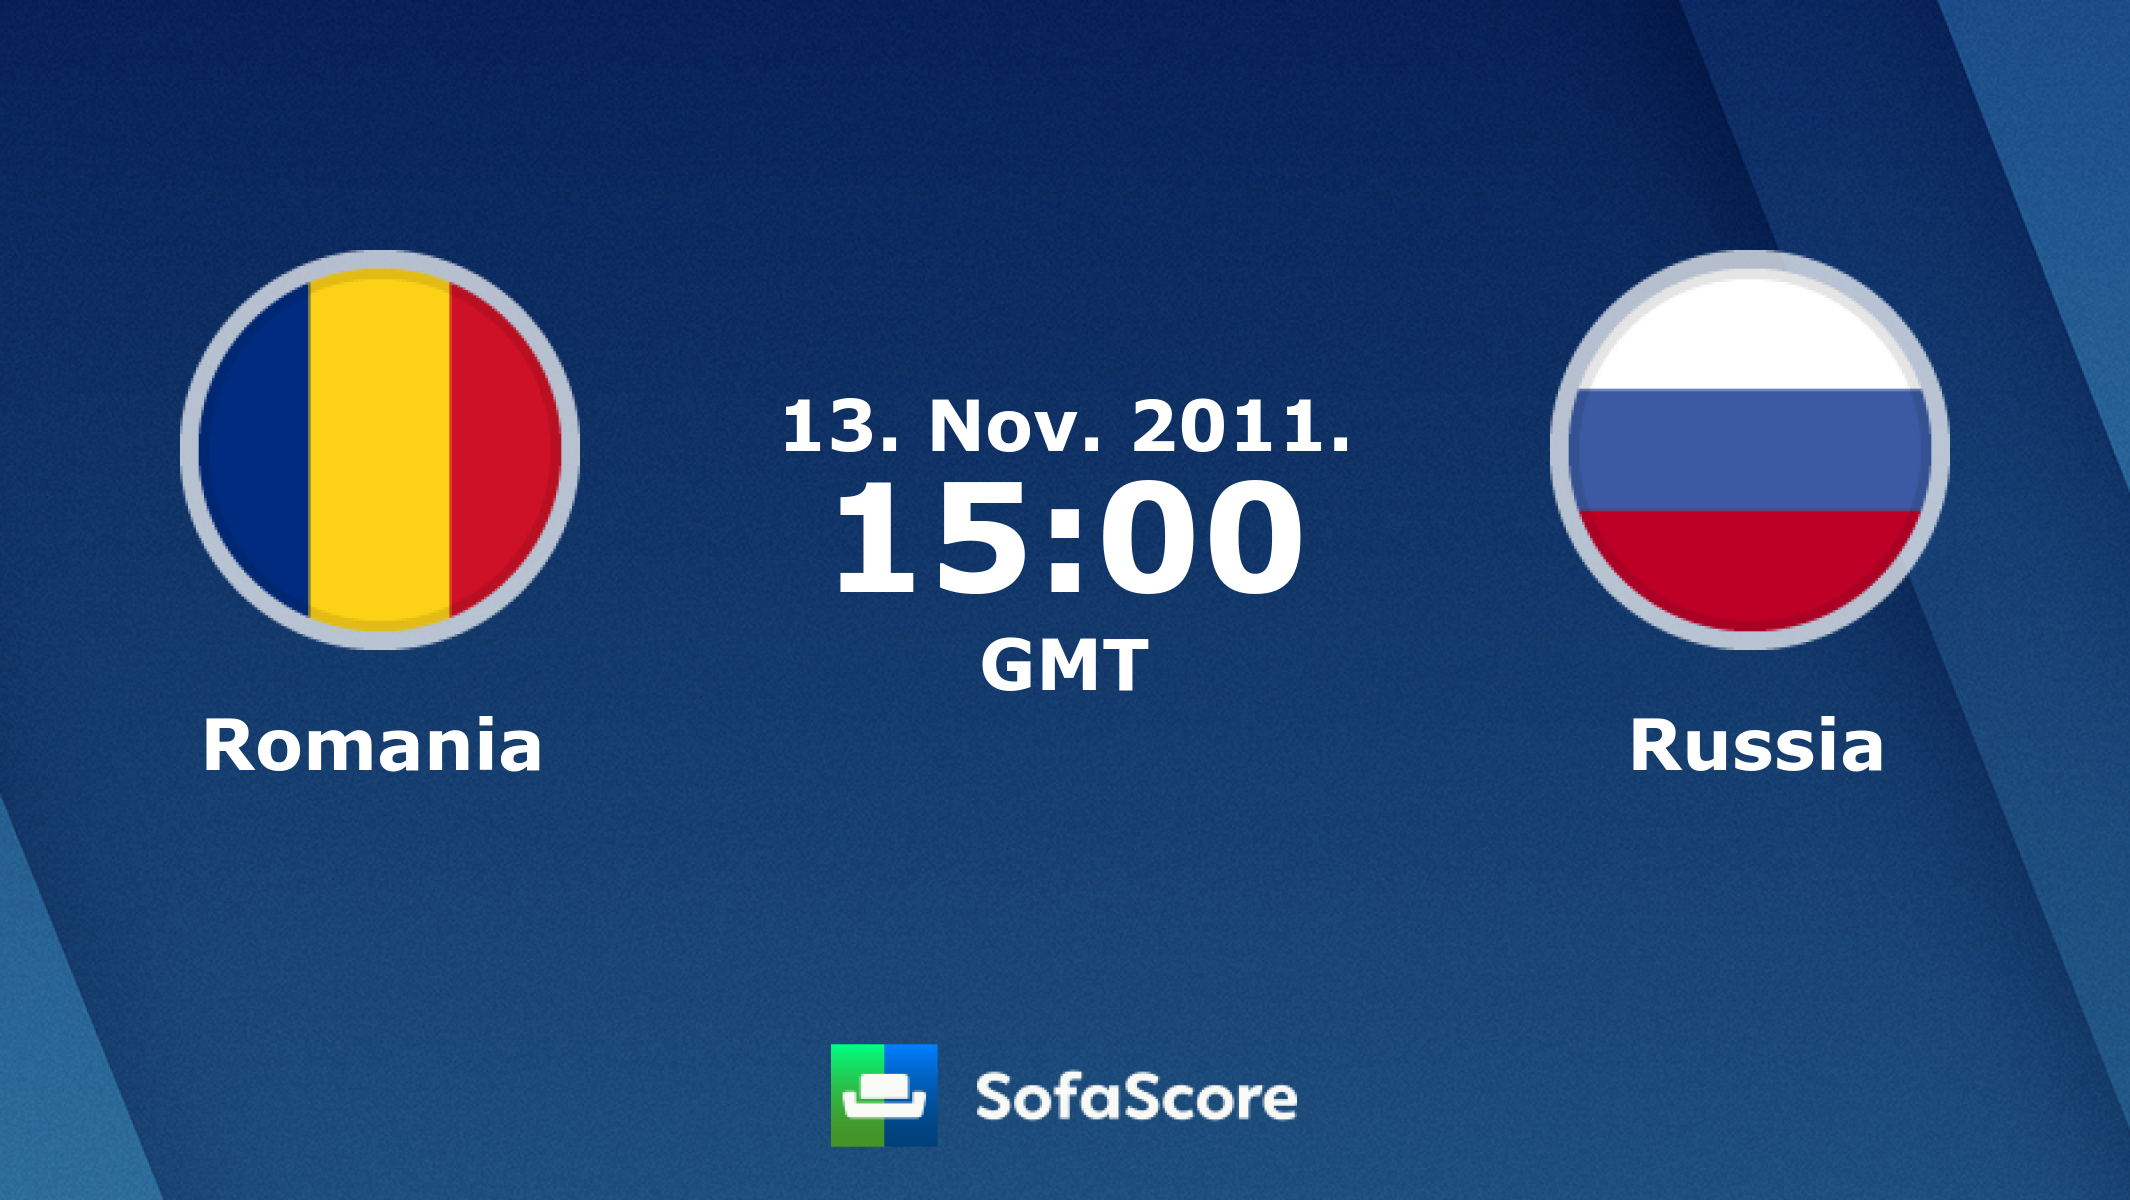 In Romania live better than in Russia